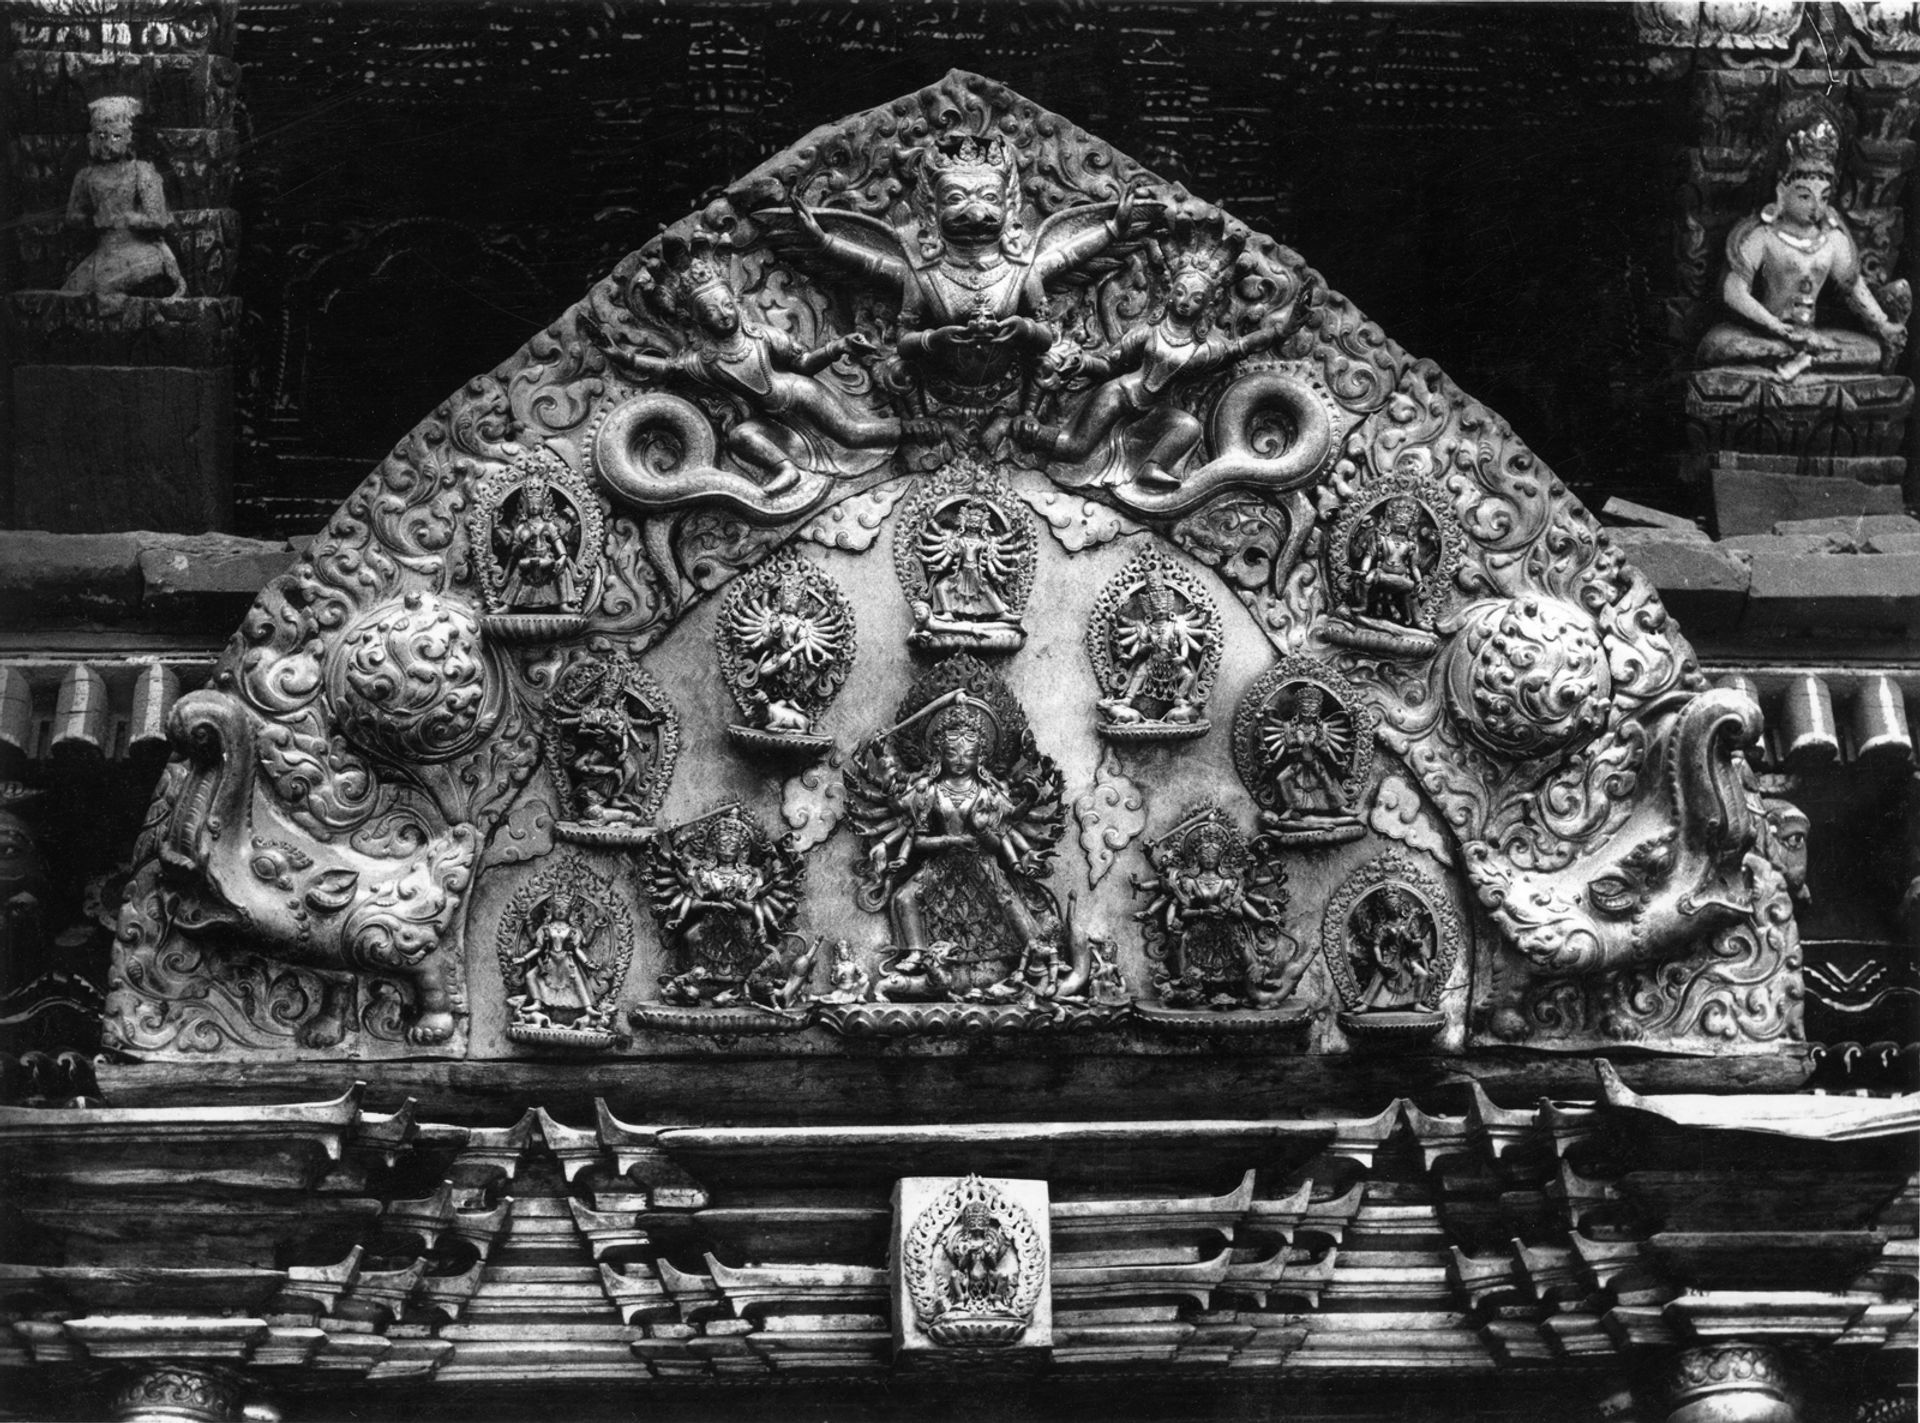 The frieze above the golden gateway of Taleju Bhawani Temple at Patan Durbar Square Image: courtesy of Lost Arts of Nepal